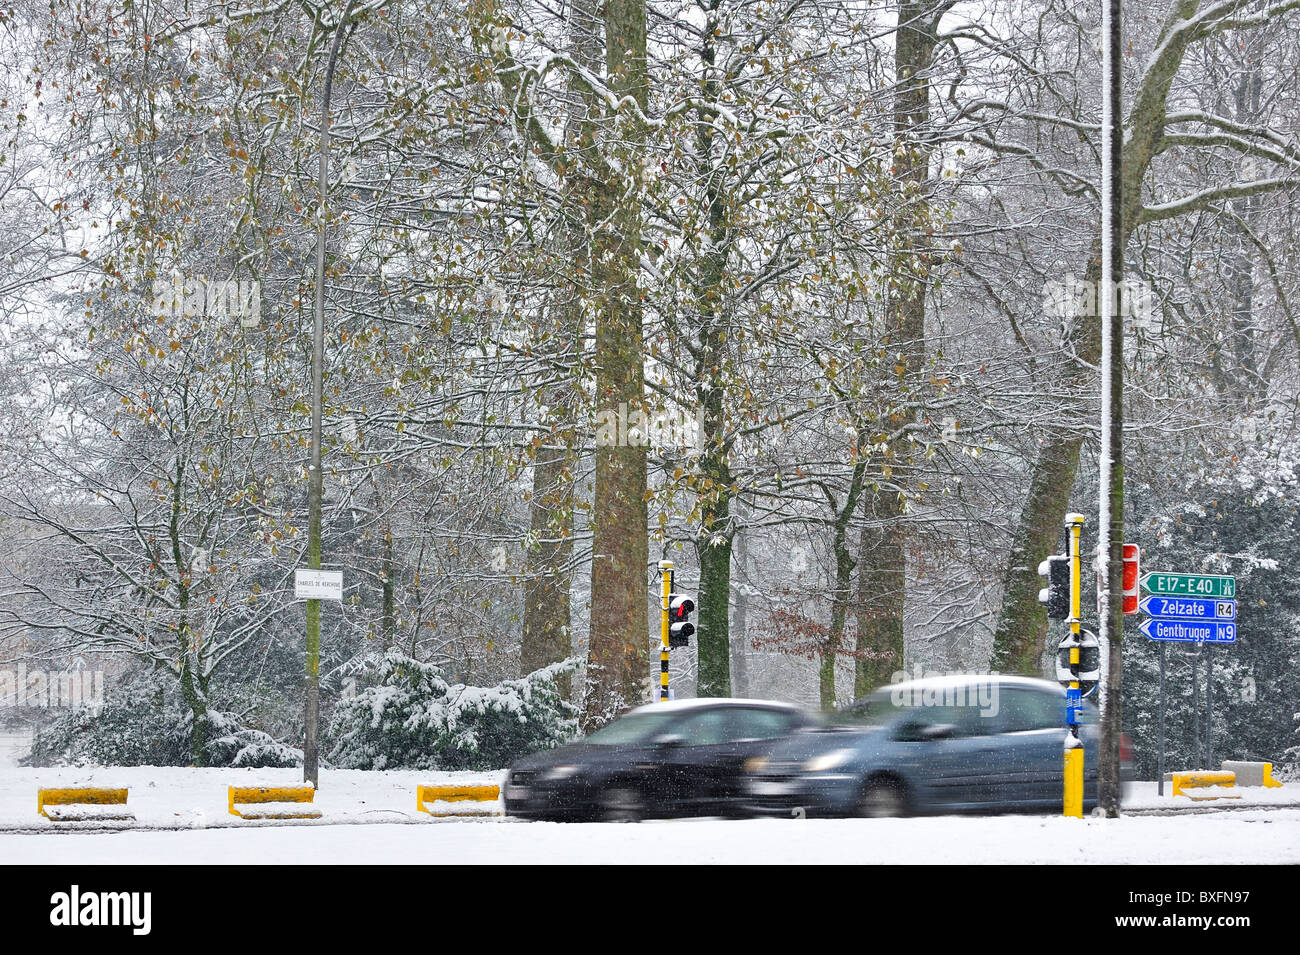 Cars driving on slippery road in winter in the snow, Ghent Belgium Stock Photo